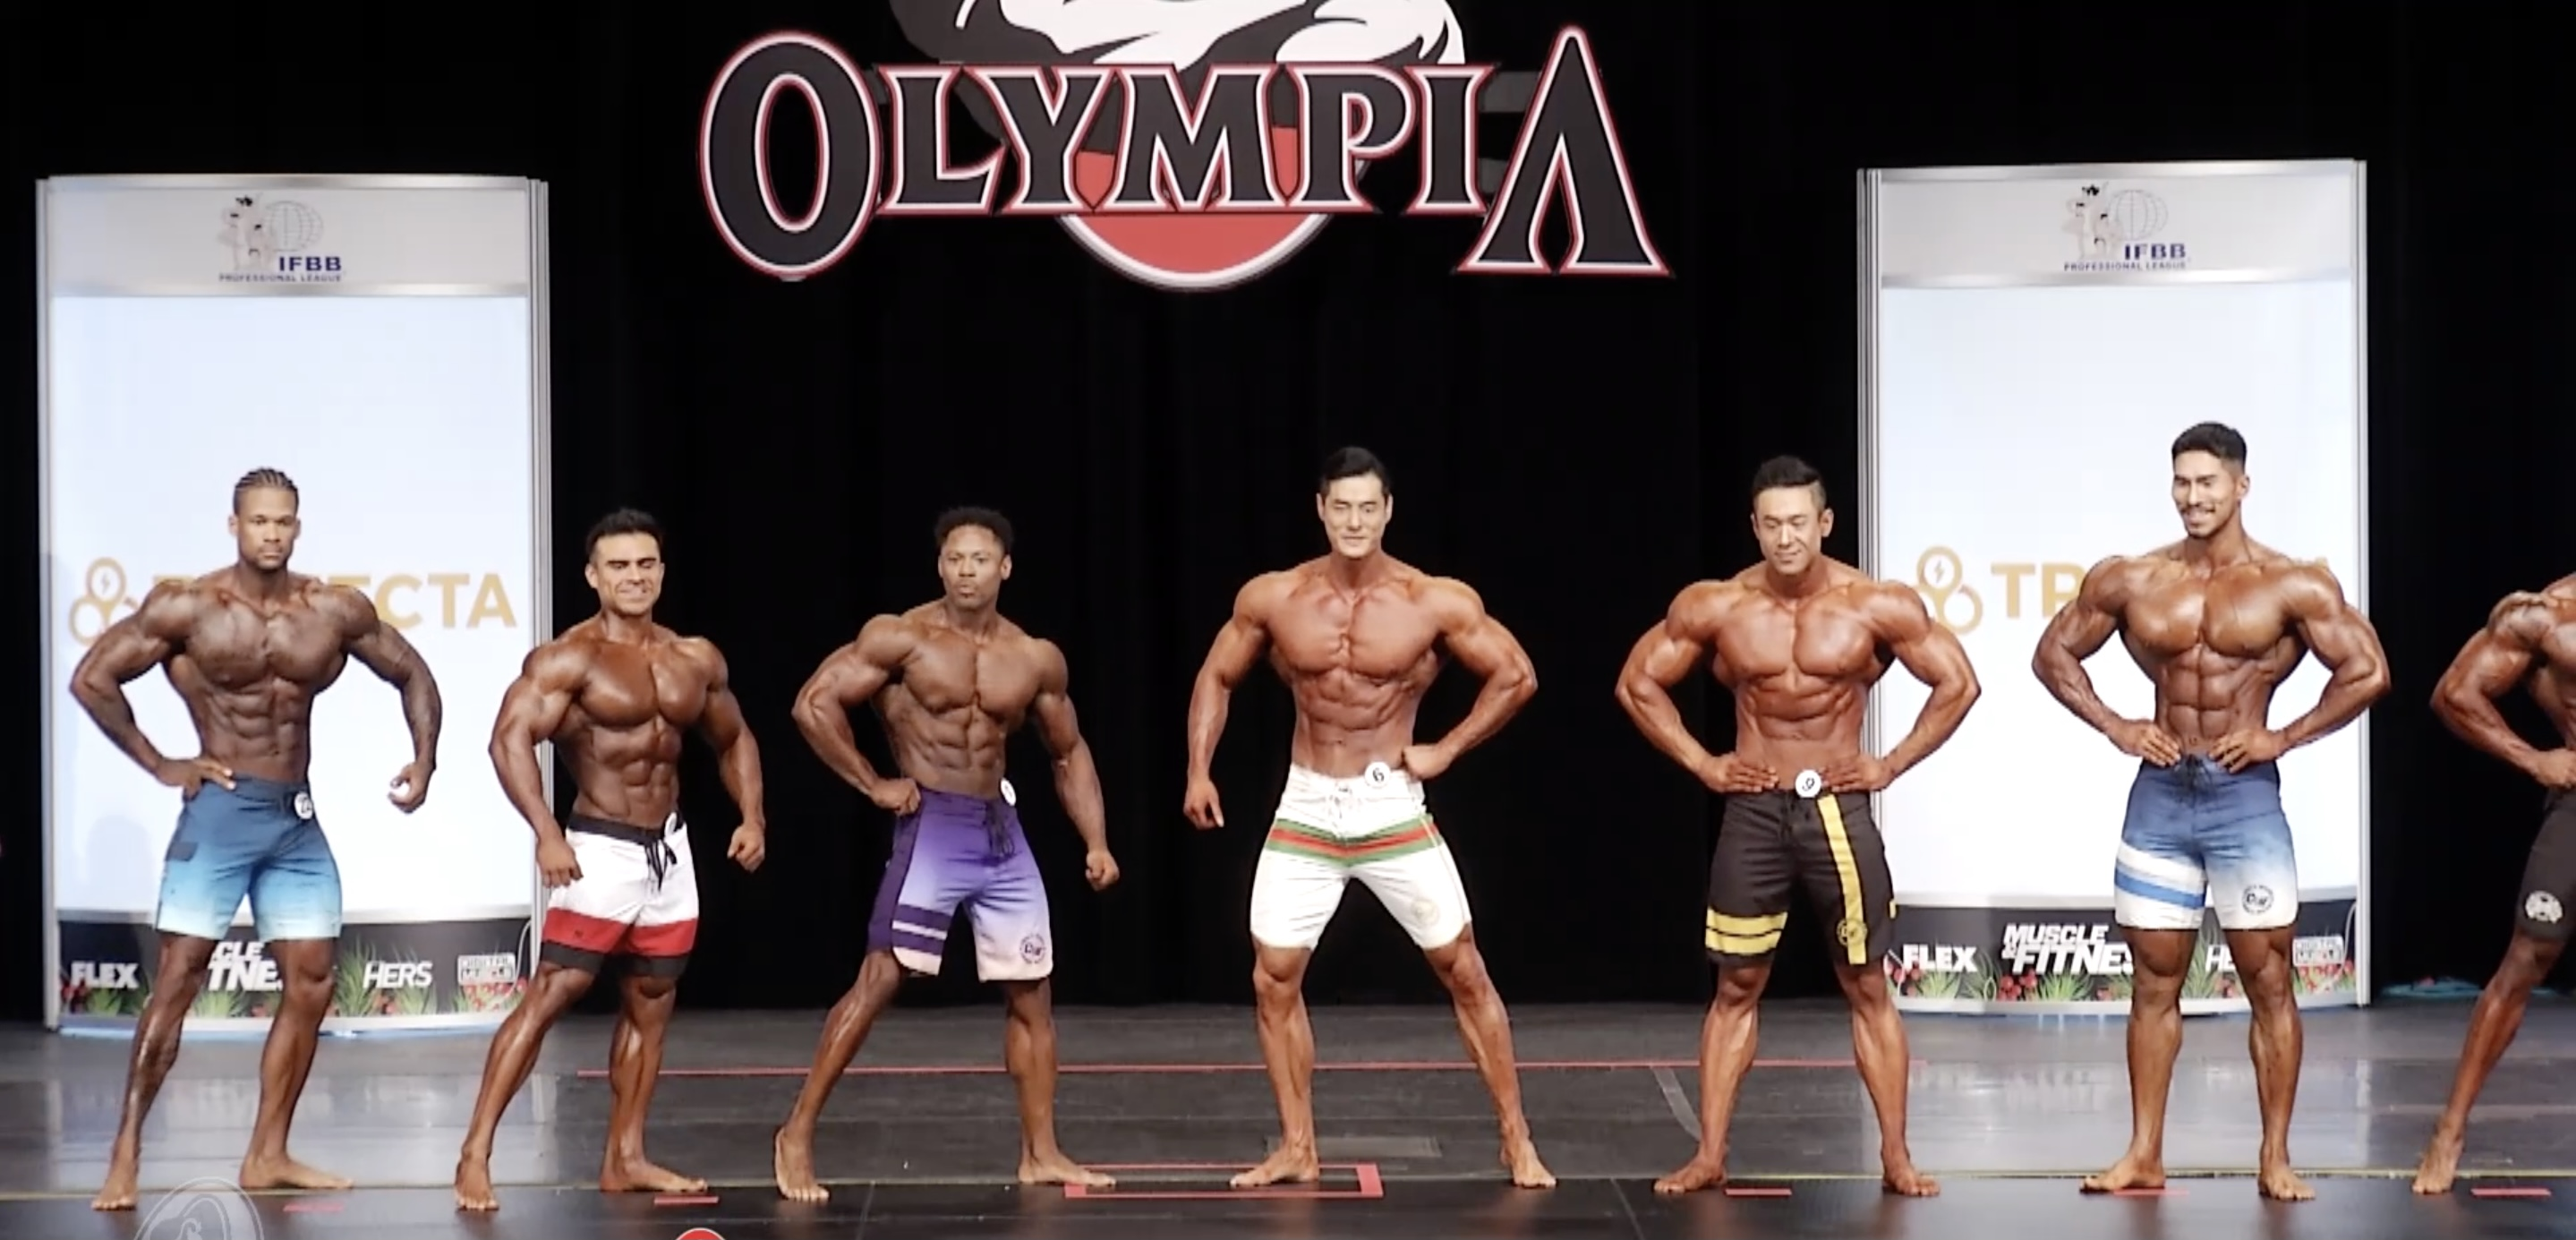 Olympia 2020 Men's Physique 6th callout